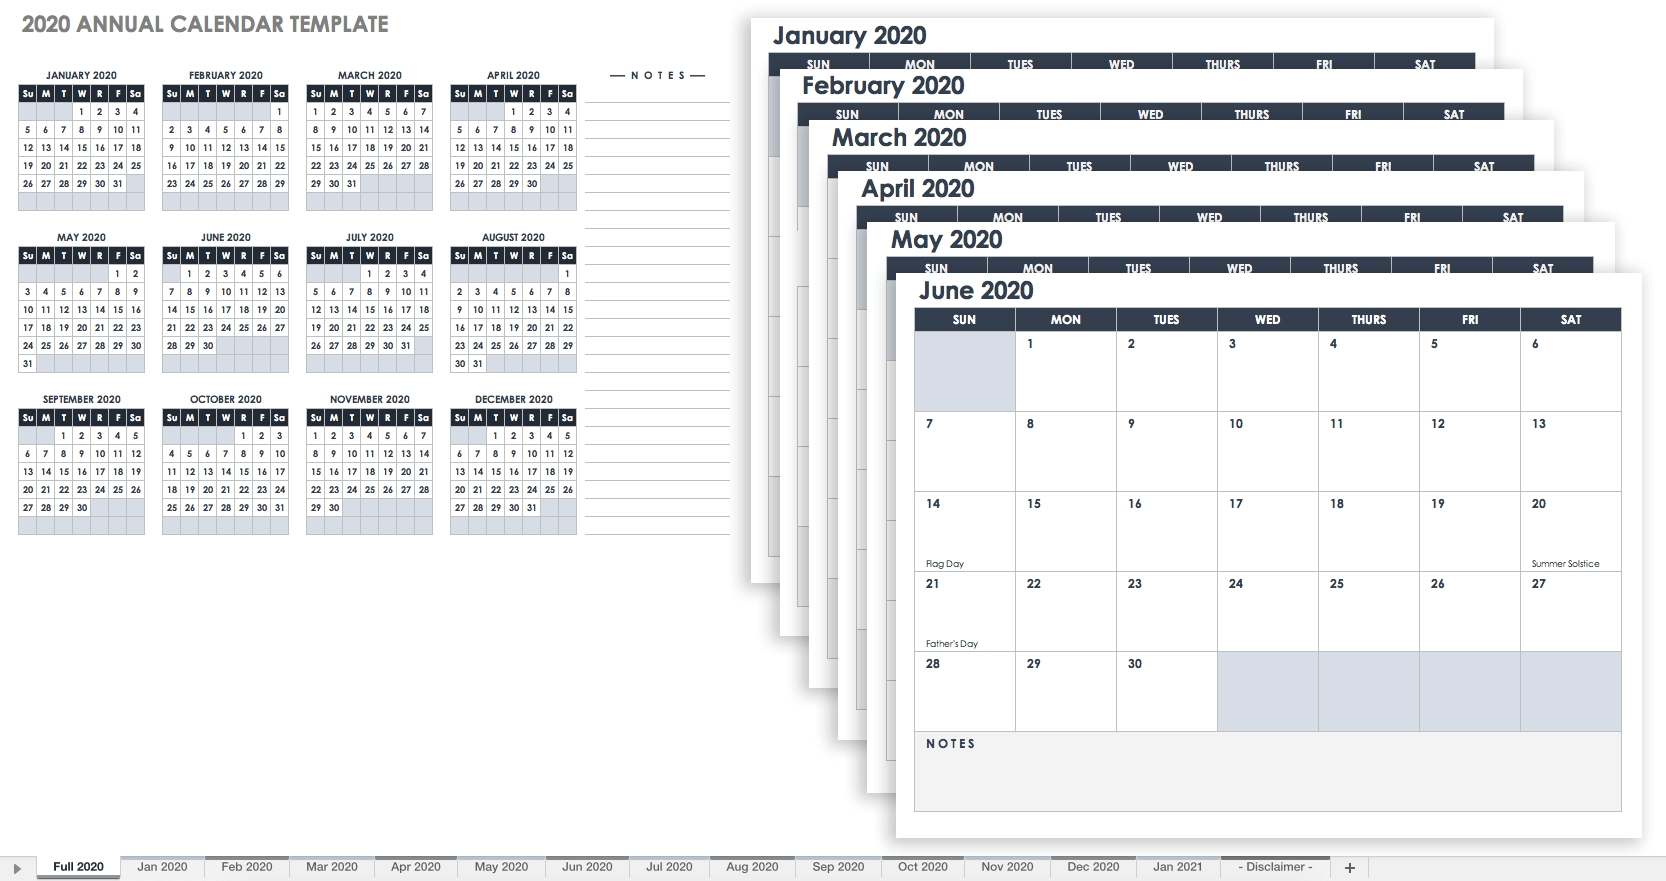 Free, Printable Excel Calendar Templates For 2019 & On   Smartsheet with regard to Calendar To Type On 2019 - 2020